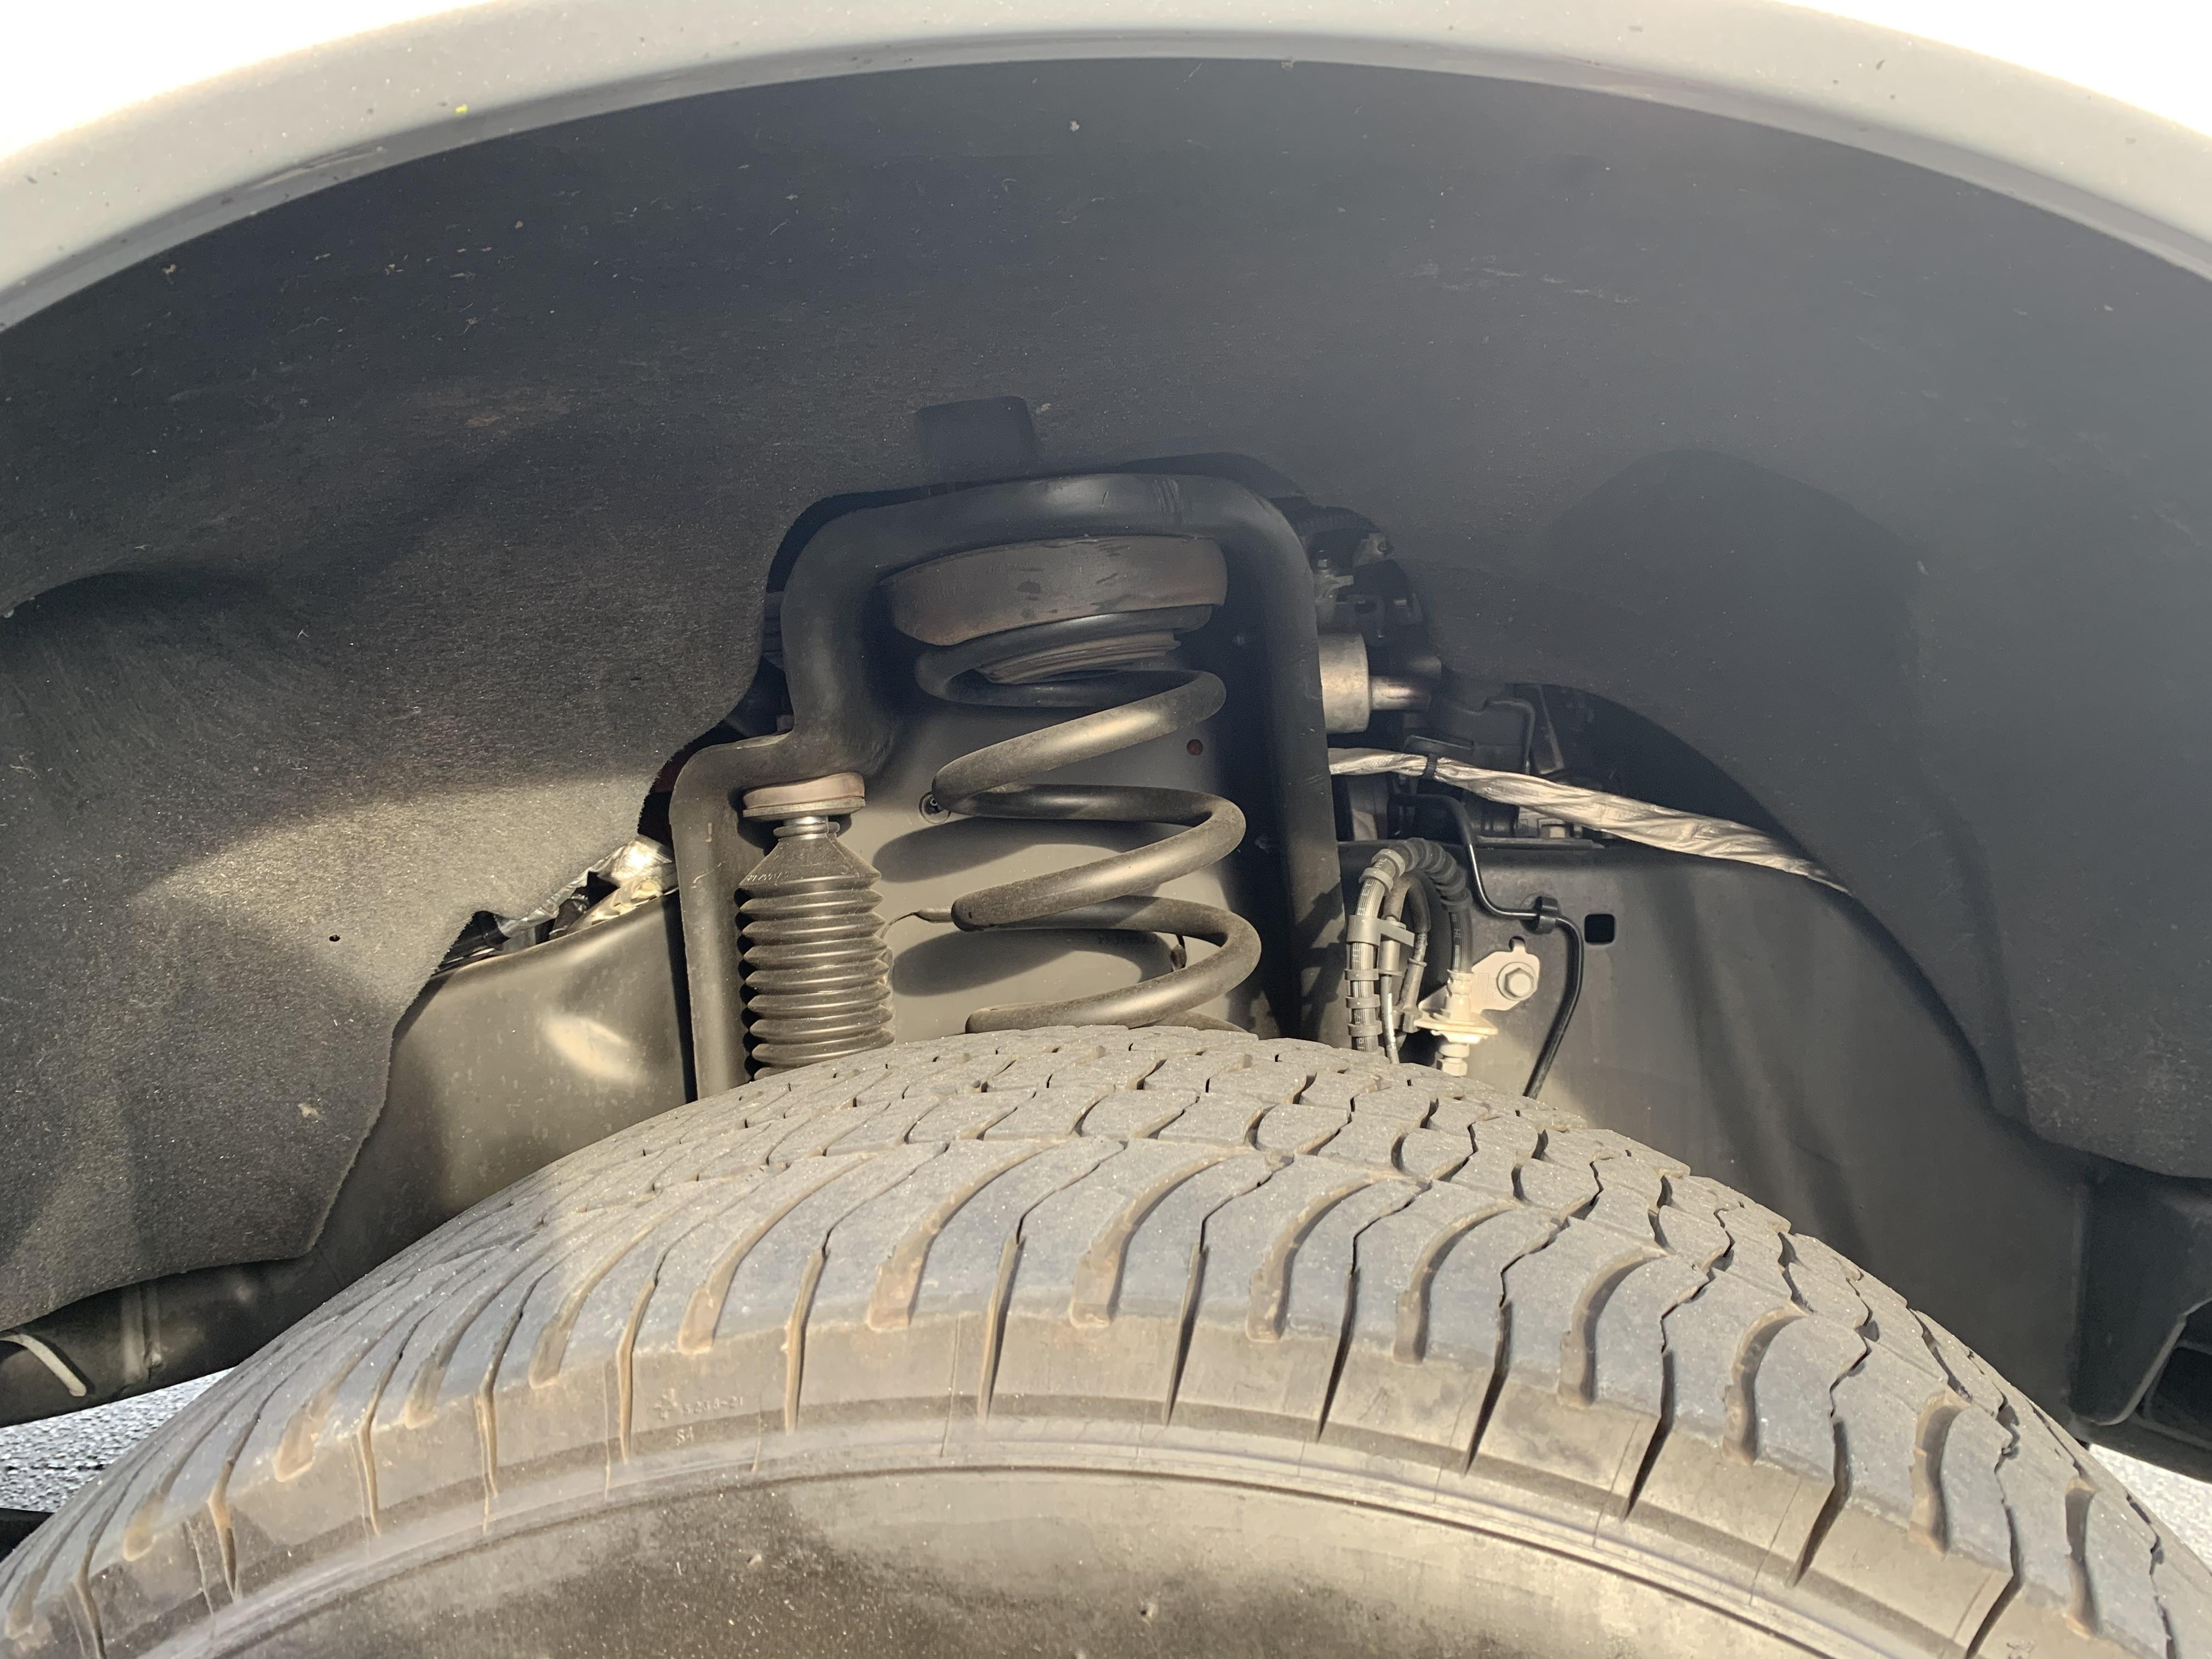 Do I have a level truck and Front left tire sticks out further than right-c1ac6b6c-2ad2-4042-ad6f-0f12c4008578_1559943761358.jpeg